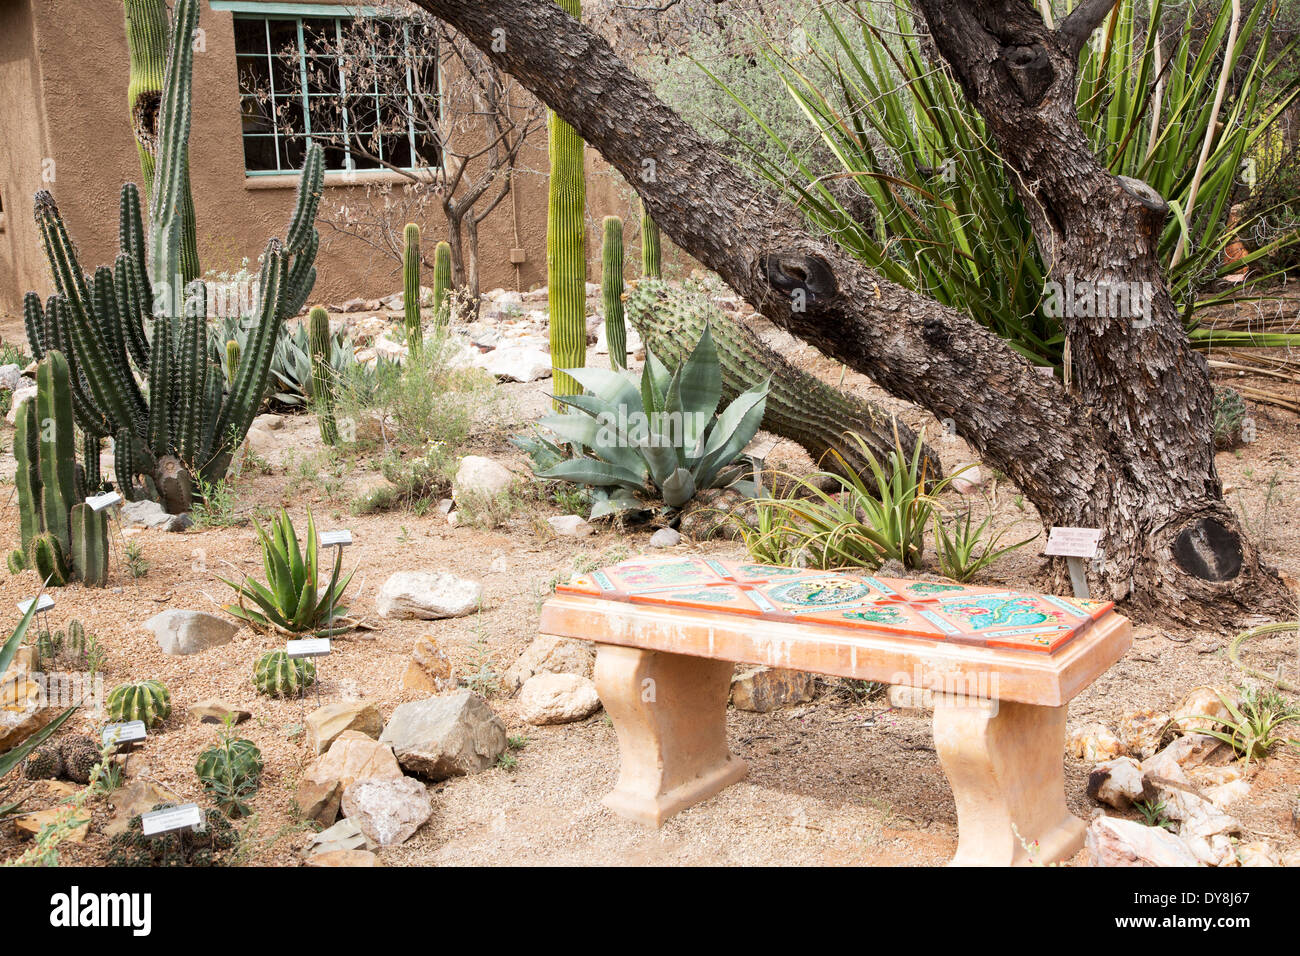 USA, Arizona, Tucson, Tucson Botanical Gardens, Cactus And Succulent Garden  With Bench And Adobe House